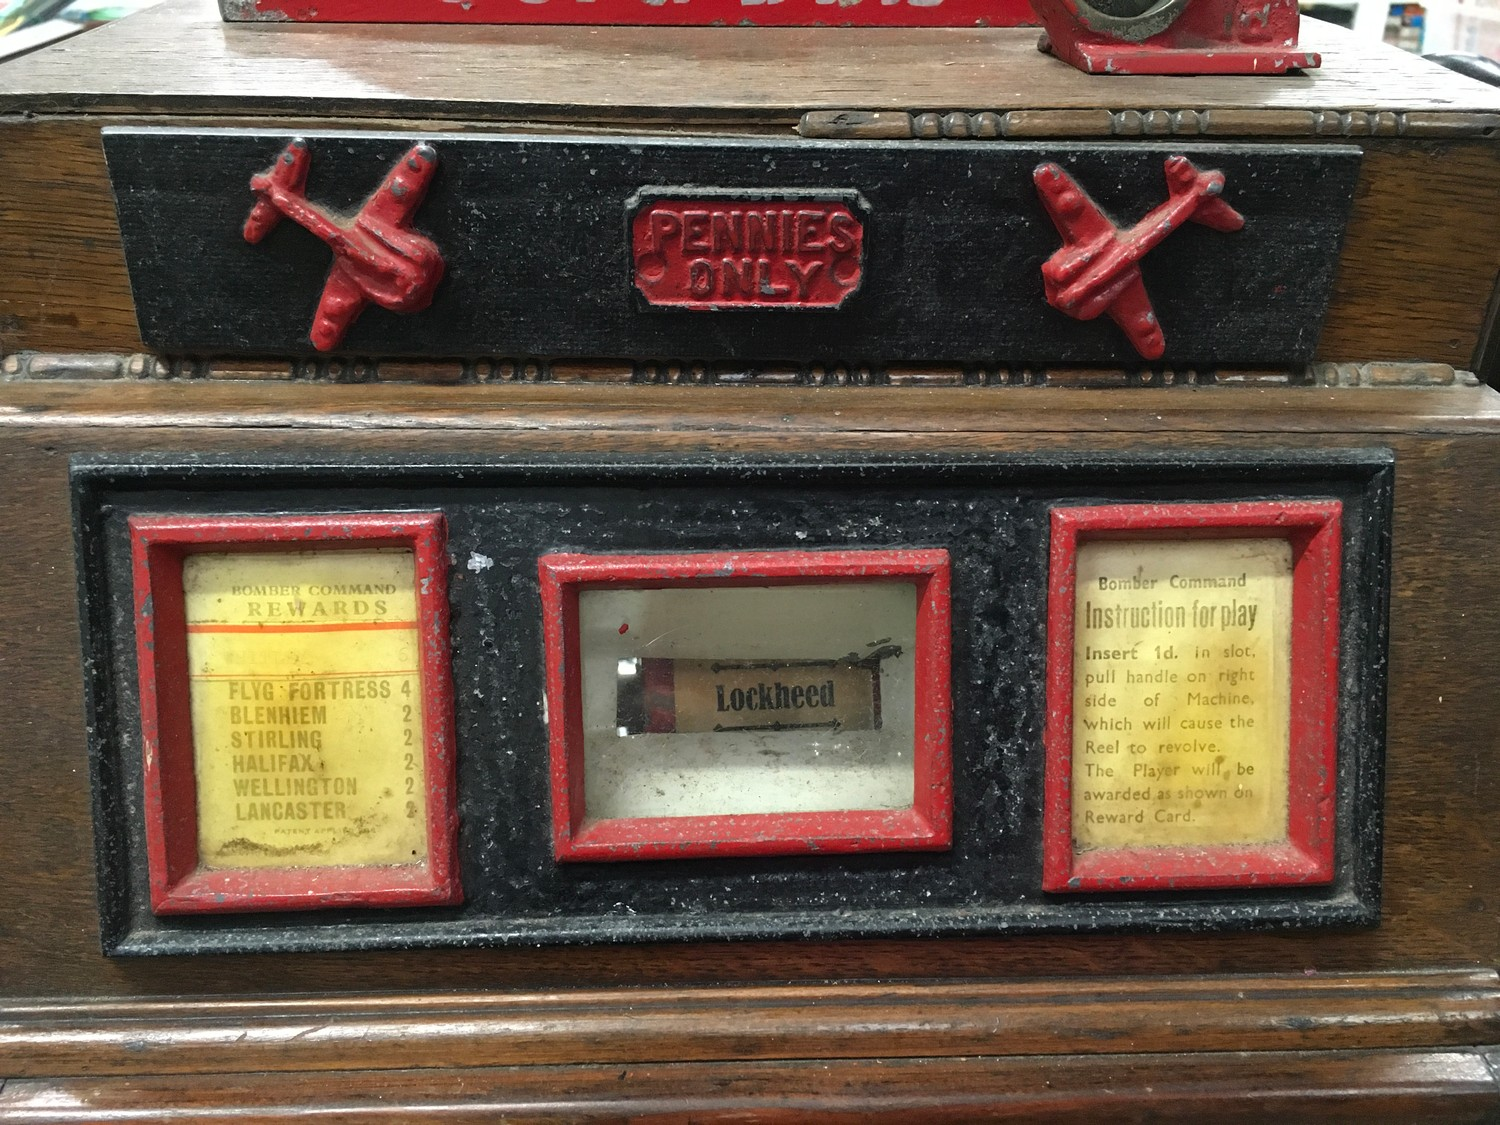 Bomber Command Slot Machine. Works on 1d coin. Mills Mechanism. - Image 4 of 8